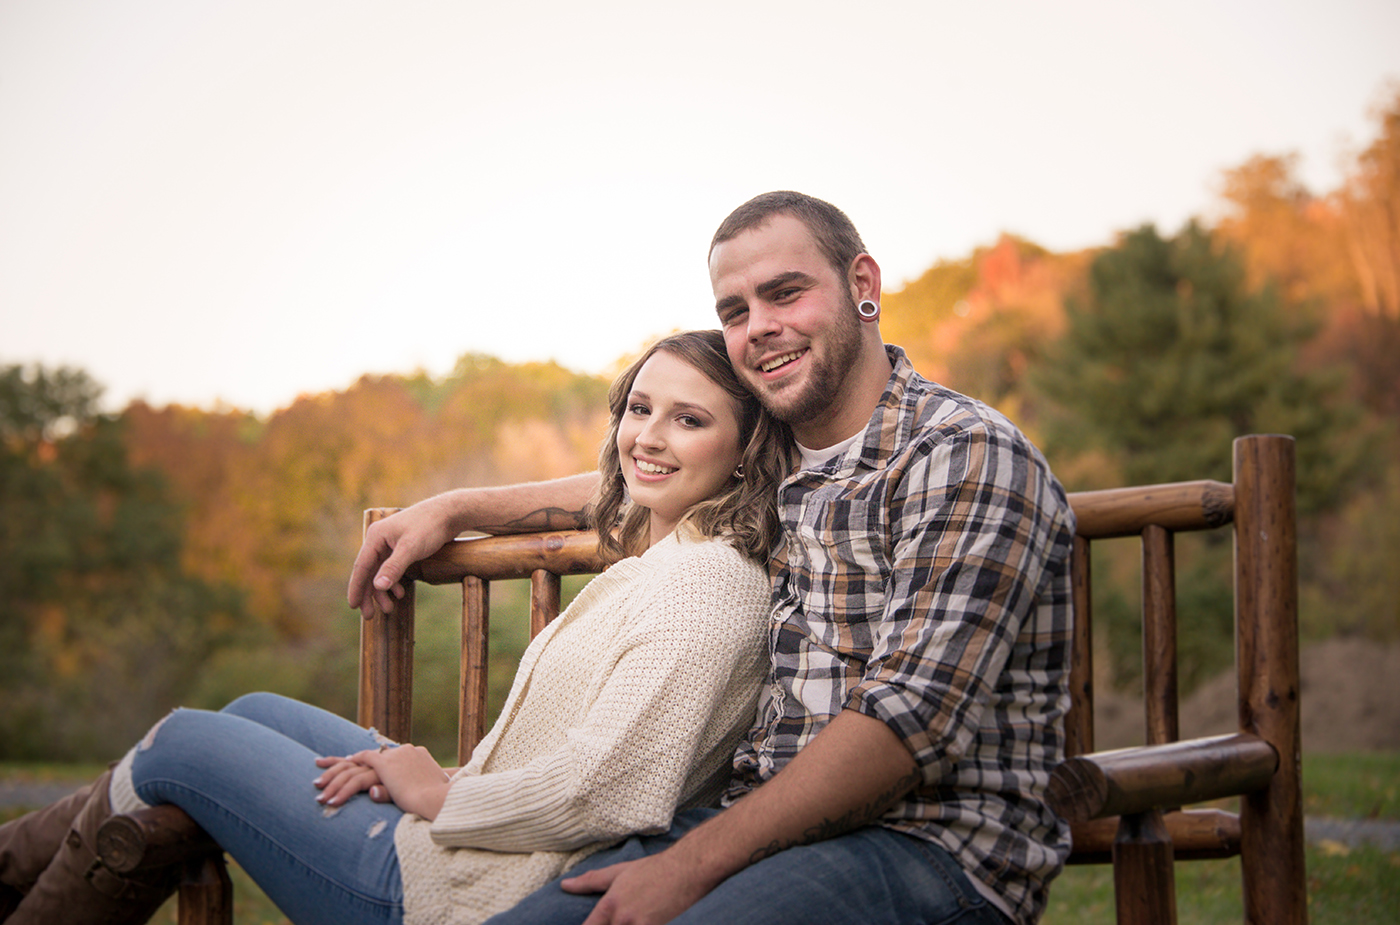 All Occasions Photography Albany NY - Engagement Photography Example 4